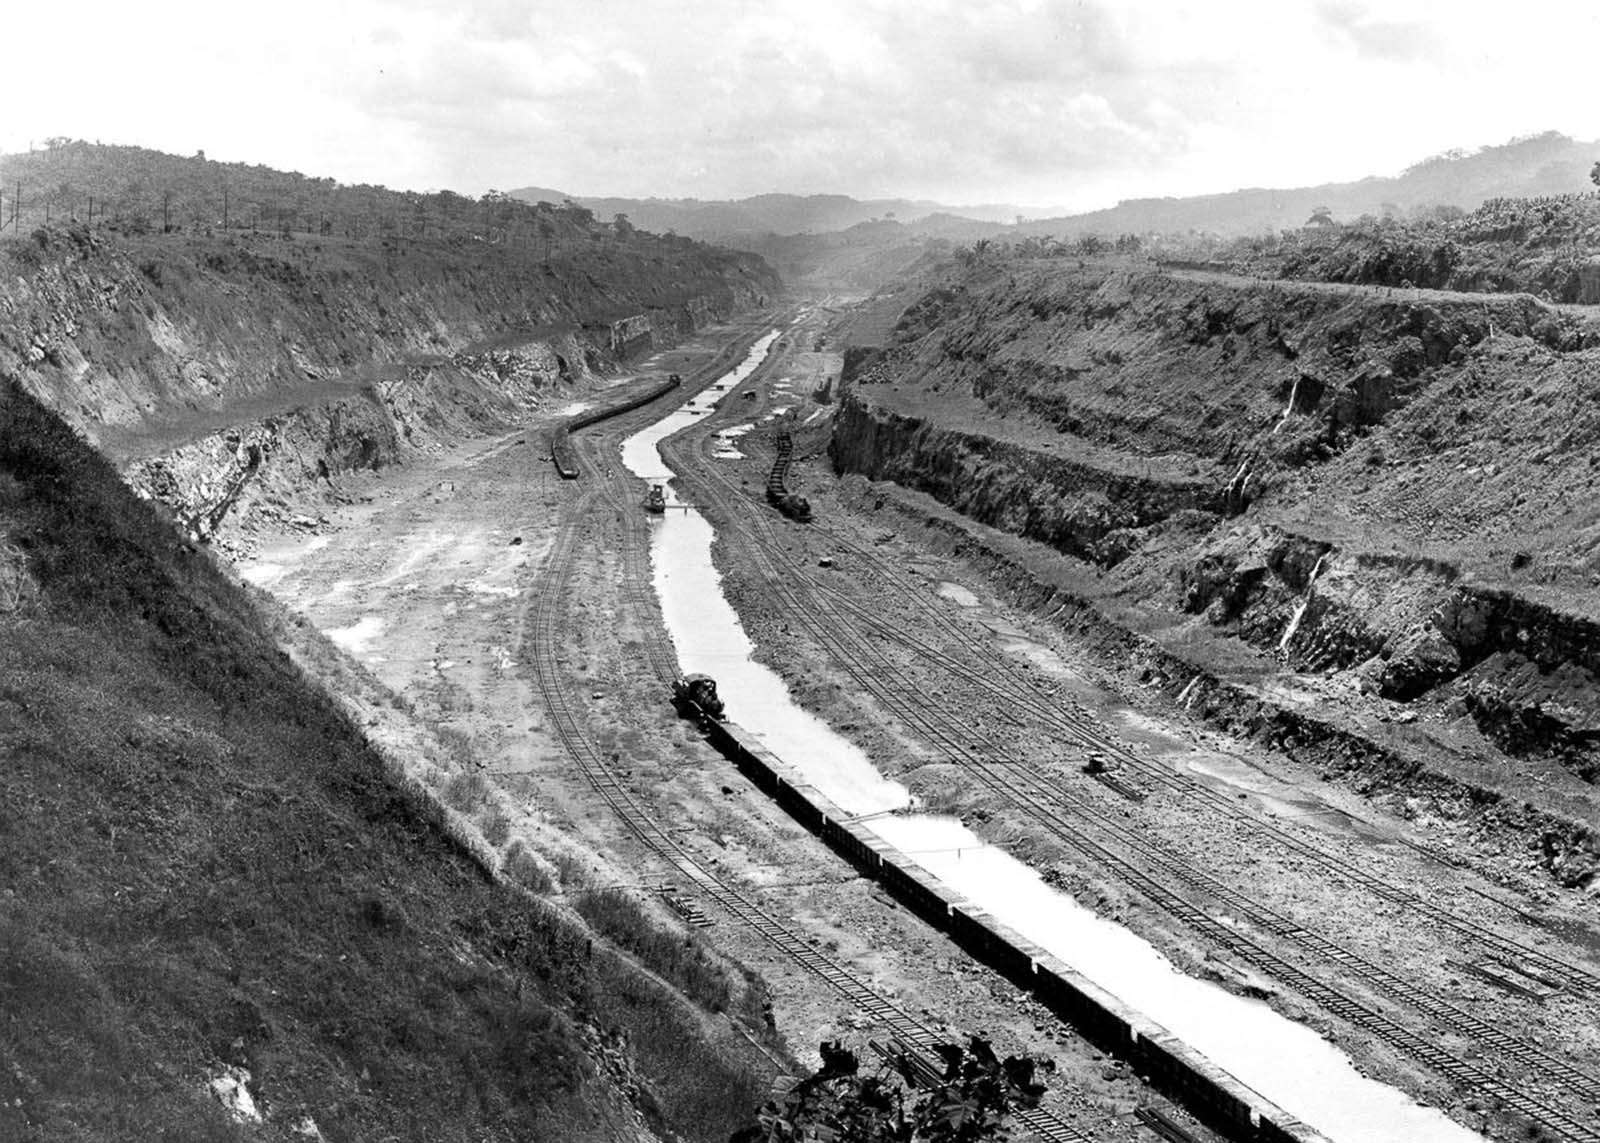 The Panama Canal under construction.